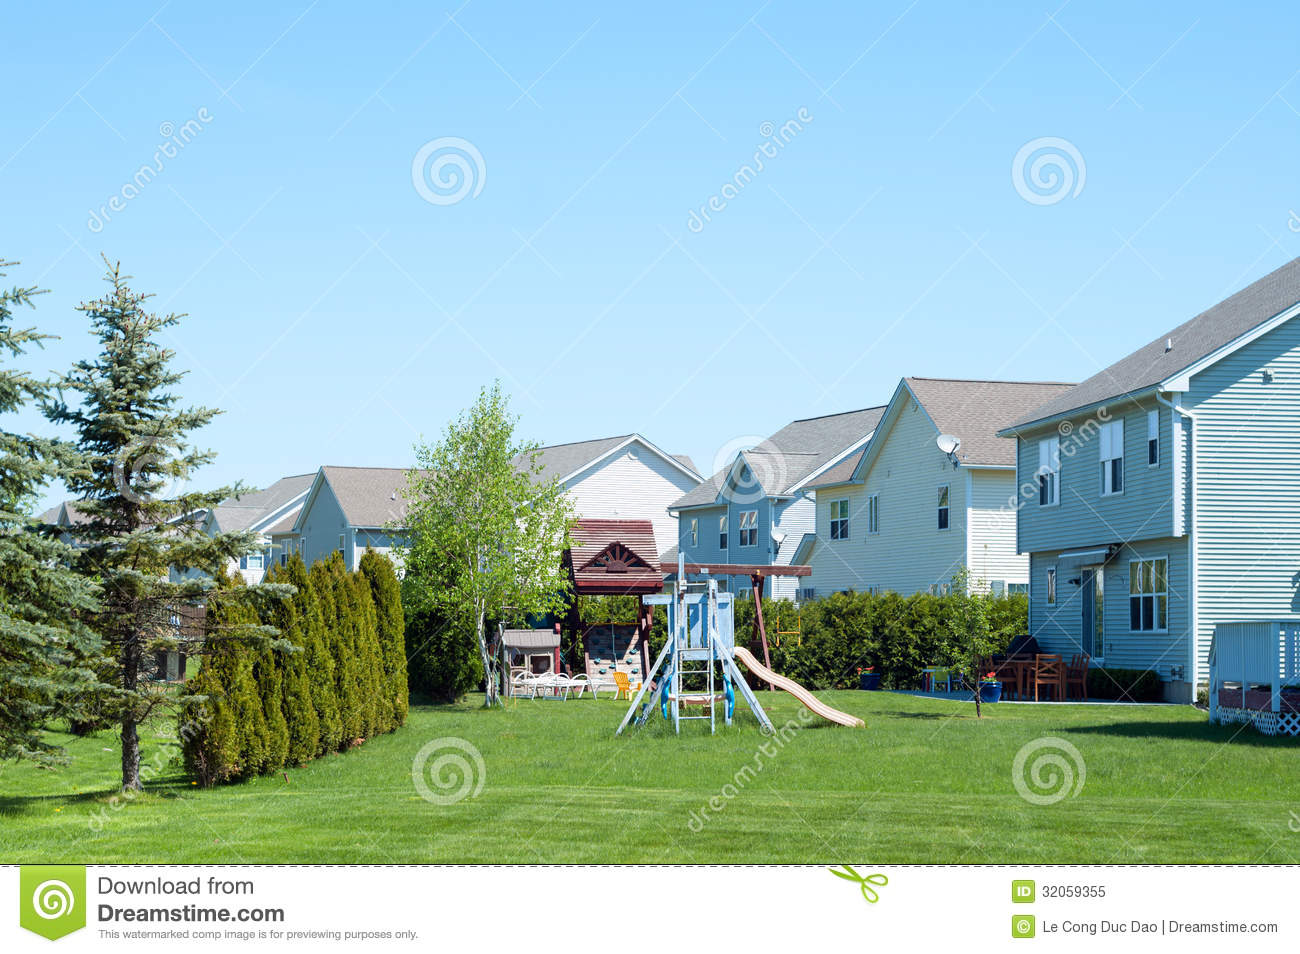 typical american backyard with child playground royalty free stock